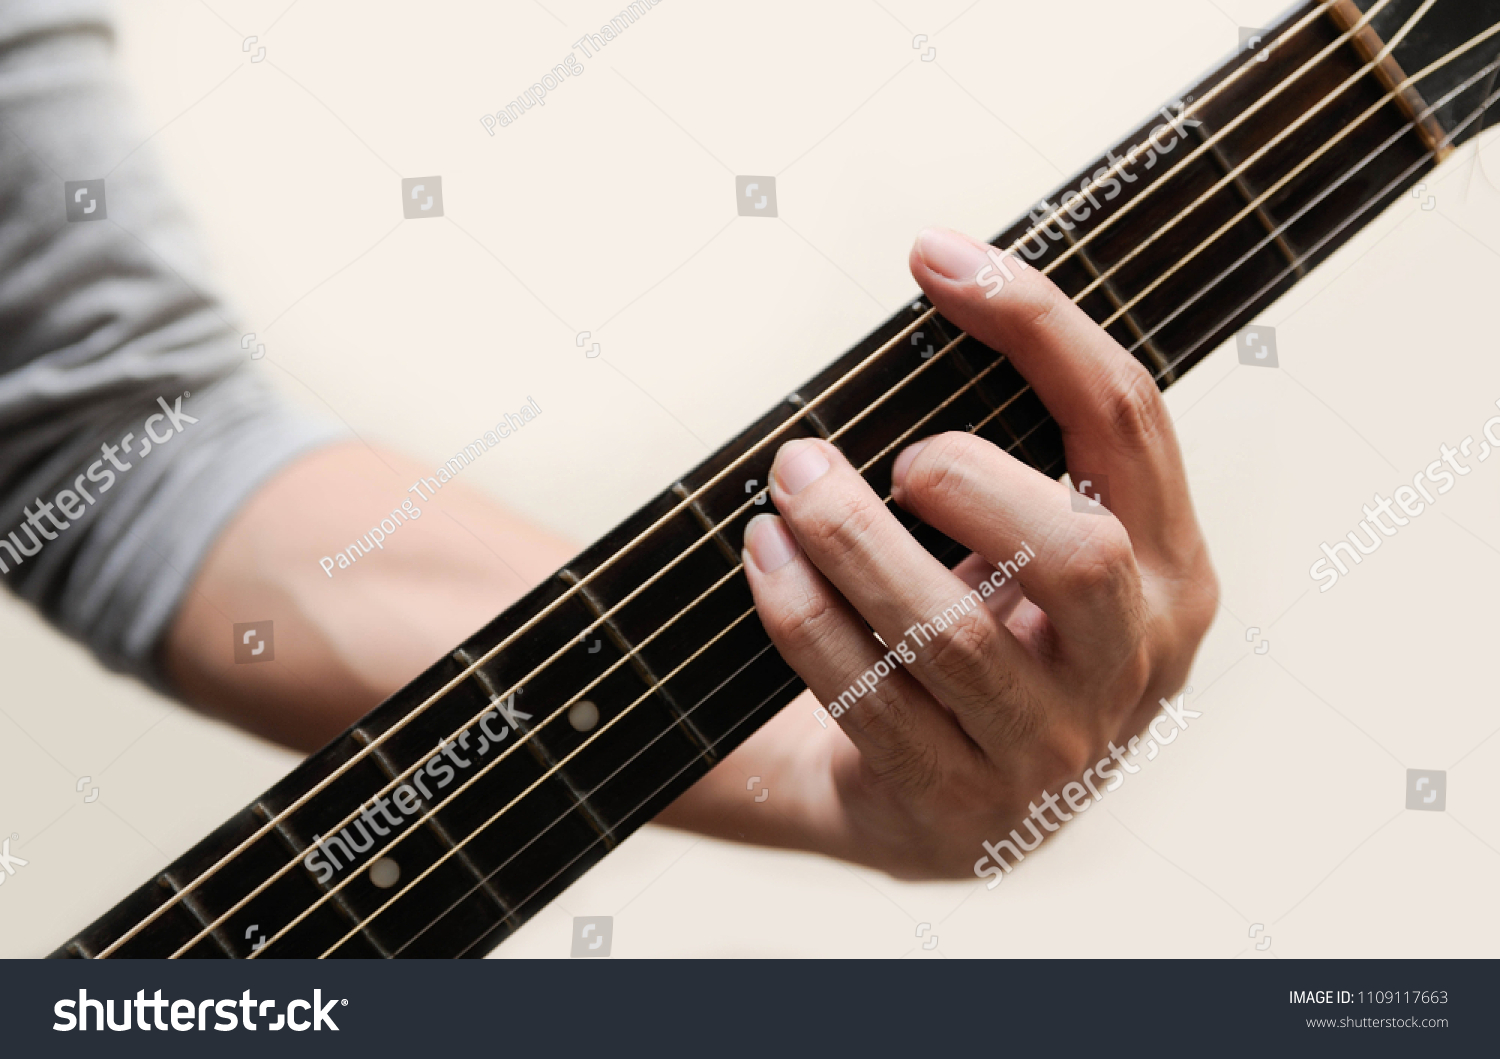 Guitar Chords Selective Focus Guitarist The Musician Holding Guitar